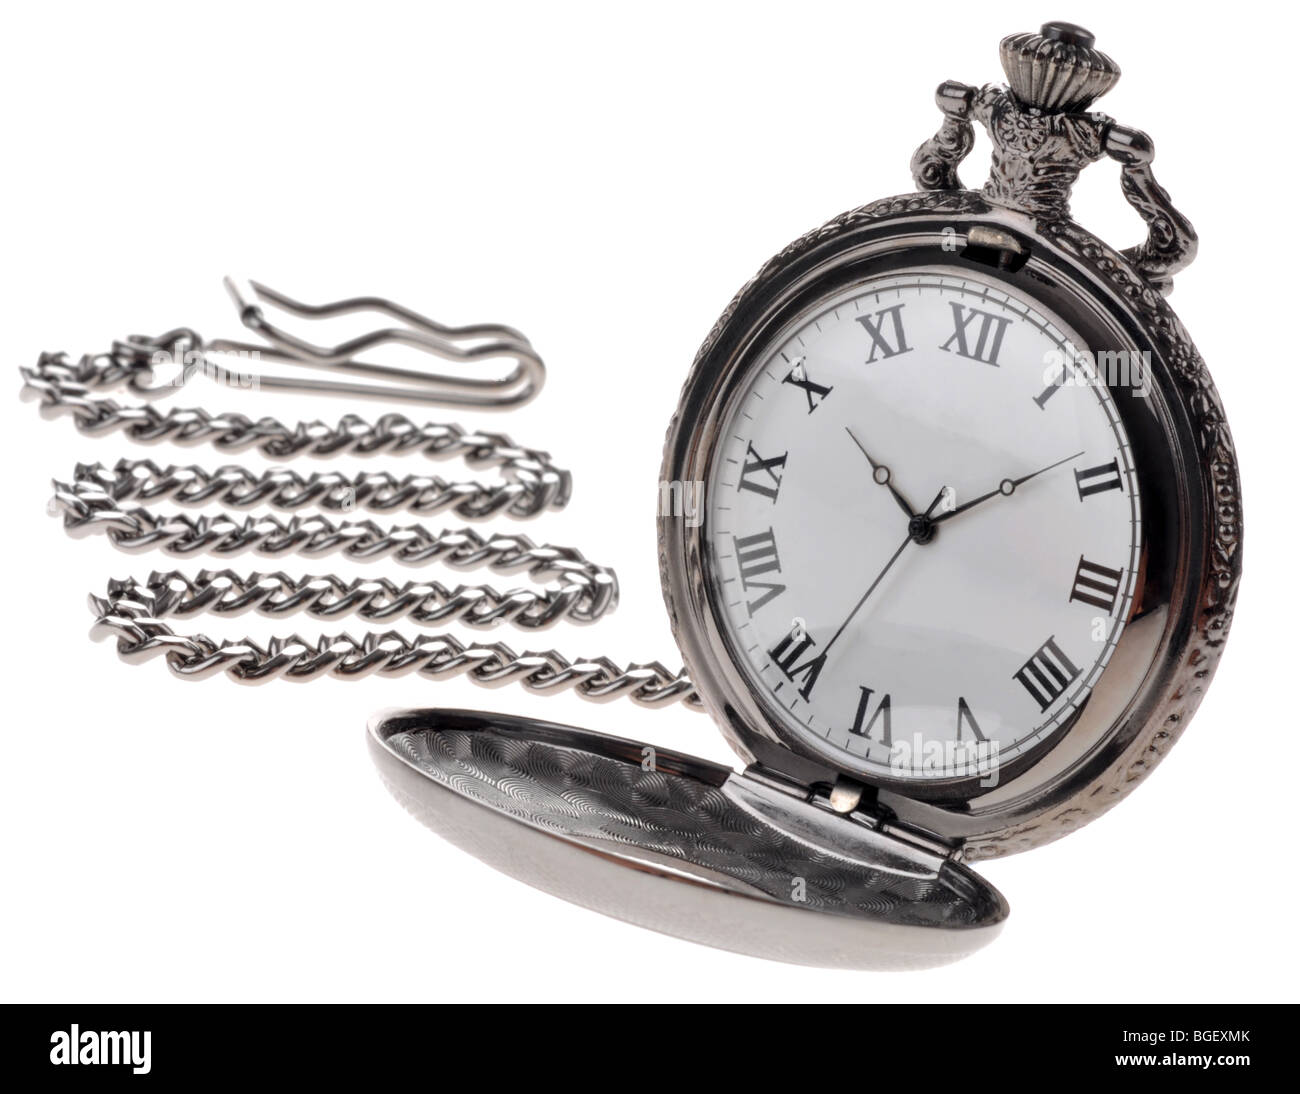 """pocket watch"" and chain, watch, clock, time - Stock Image"